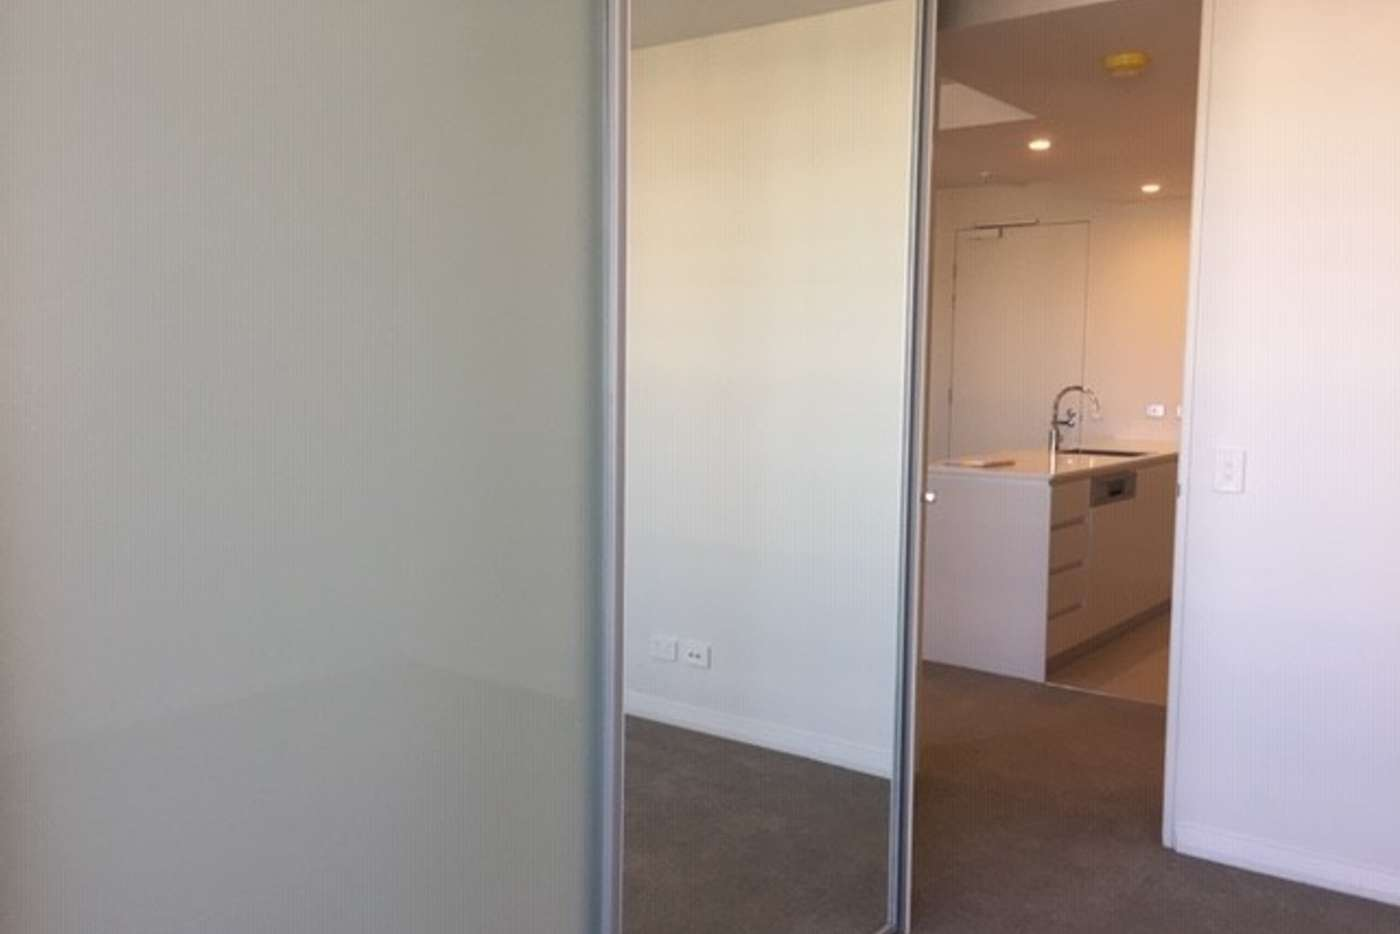 Sixth view of Homely apartment listing, 75/44 Macquarie Street, Barton ACT 2600